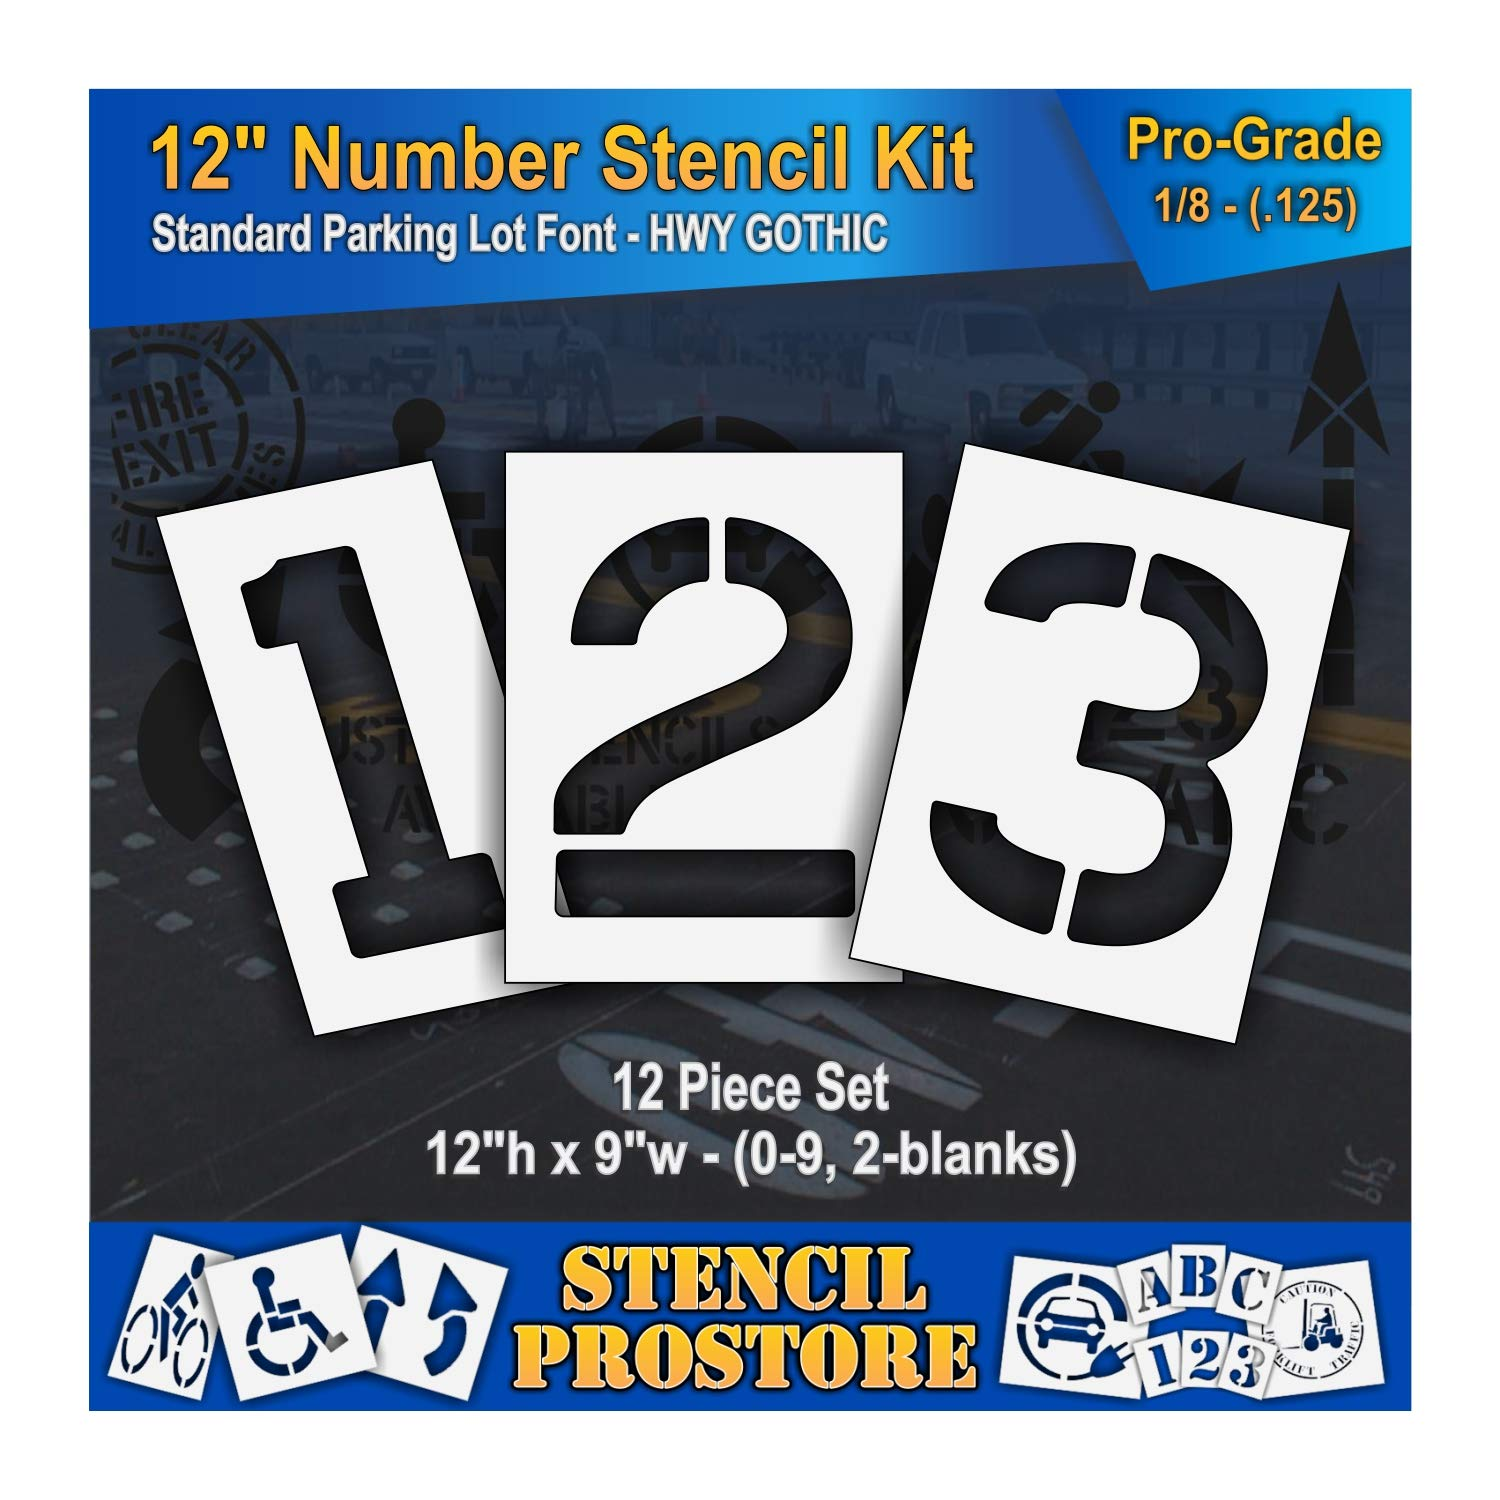 Pavement Stencils - 12 inch Number KIT Stencil Set - (12 Piece) - 12'' x 9'' x 1/8'' (128 mil) - Pro-Grade by Stencil ProStore